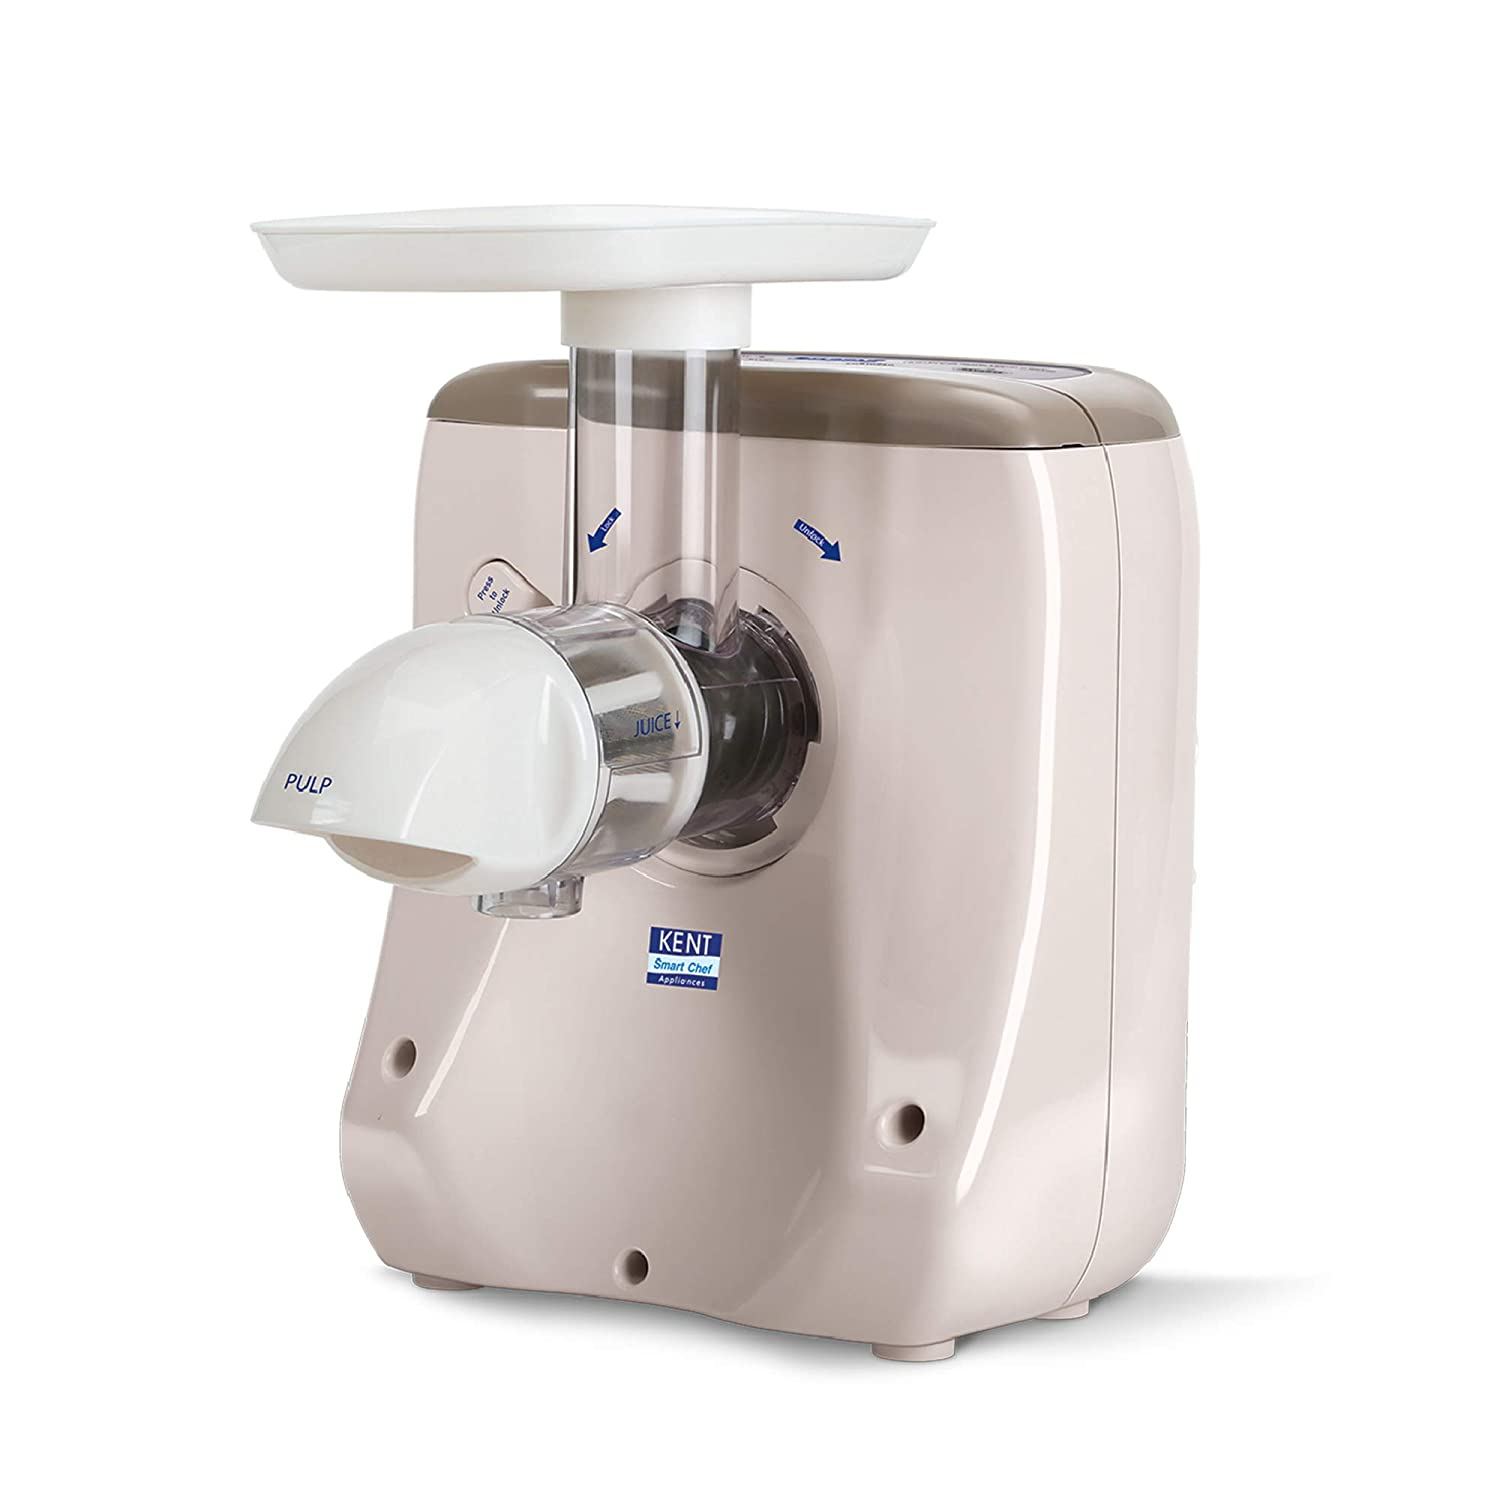 Kent Best Juicers in India